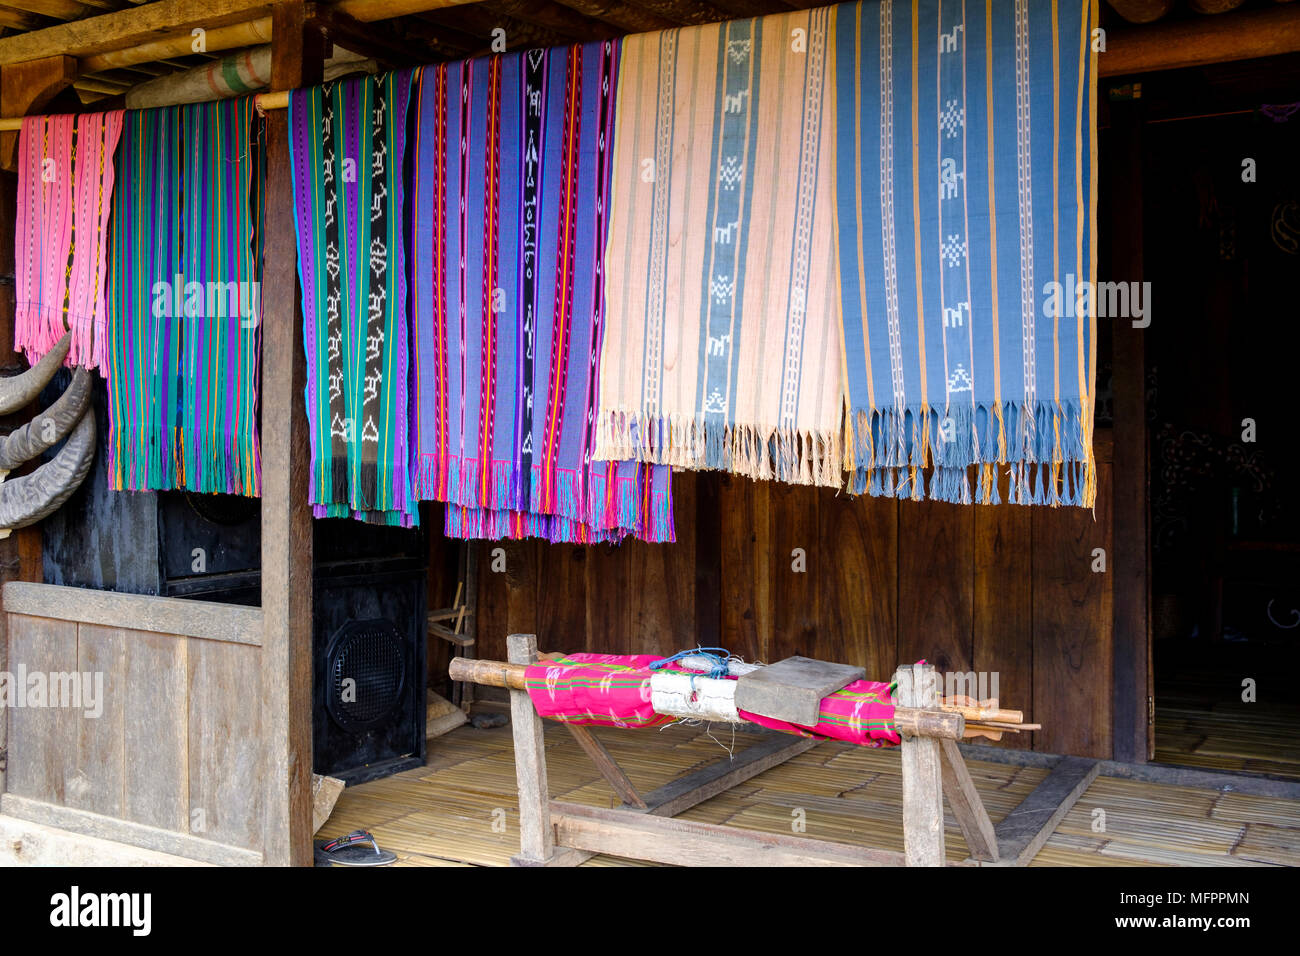 Traditional 'ikat' shawls and weaving loom at house entrance in Luba, hamlet (just outside Bena), Ngada District, Island of Flores, Indonesia. - Stock Image